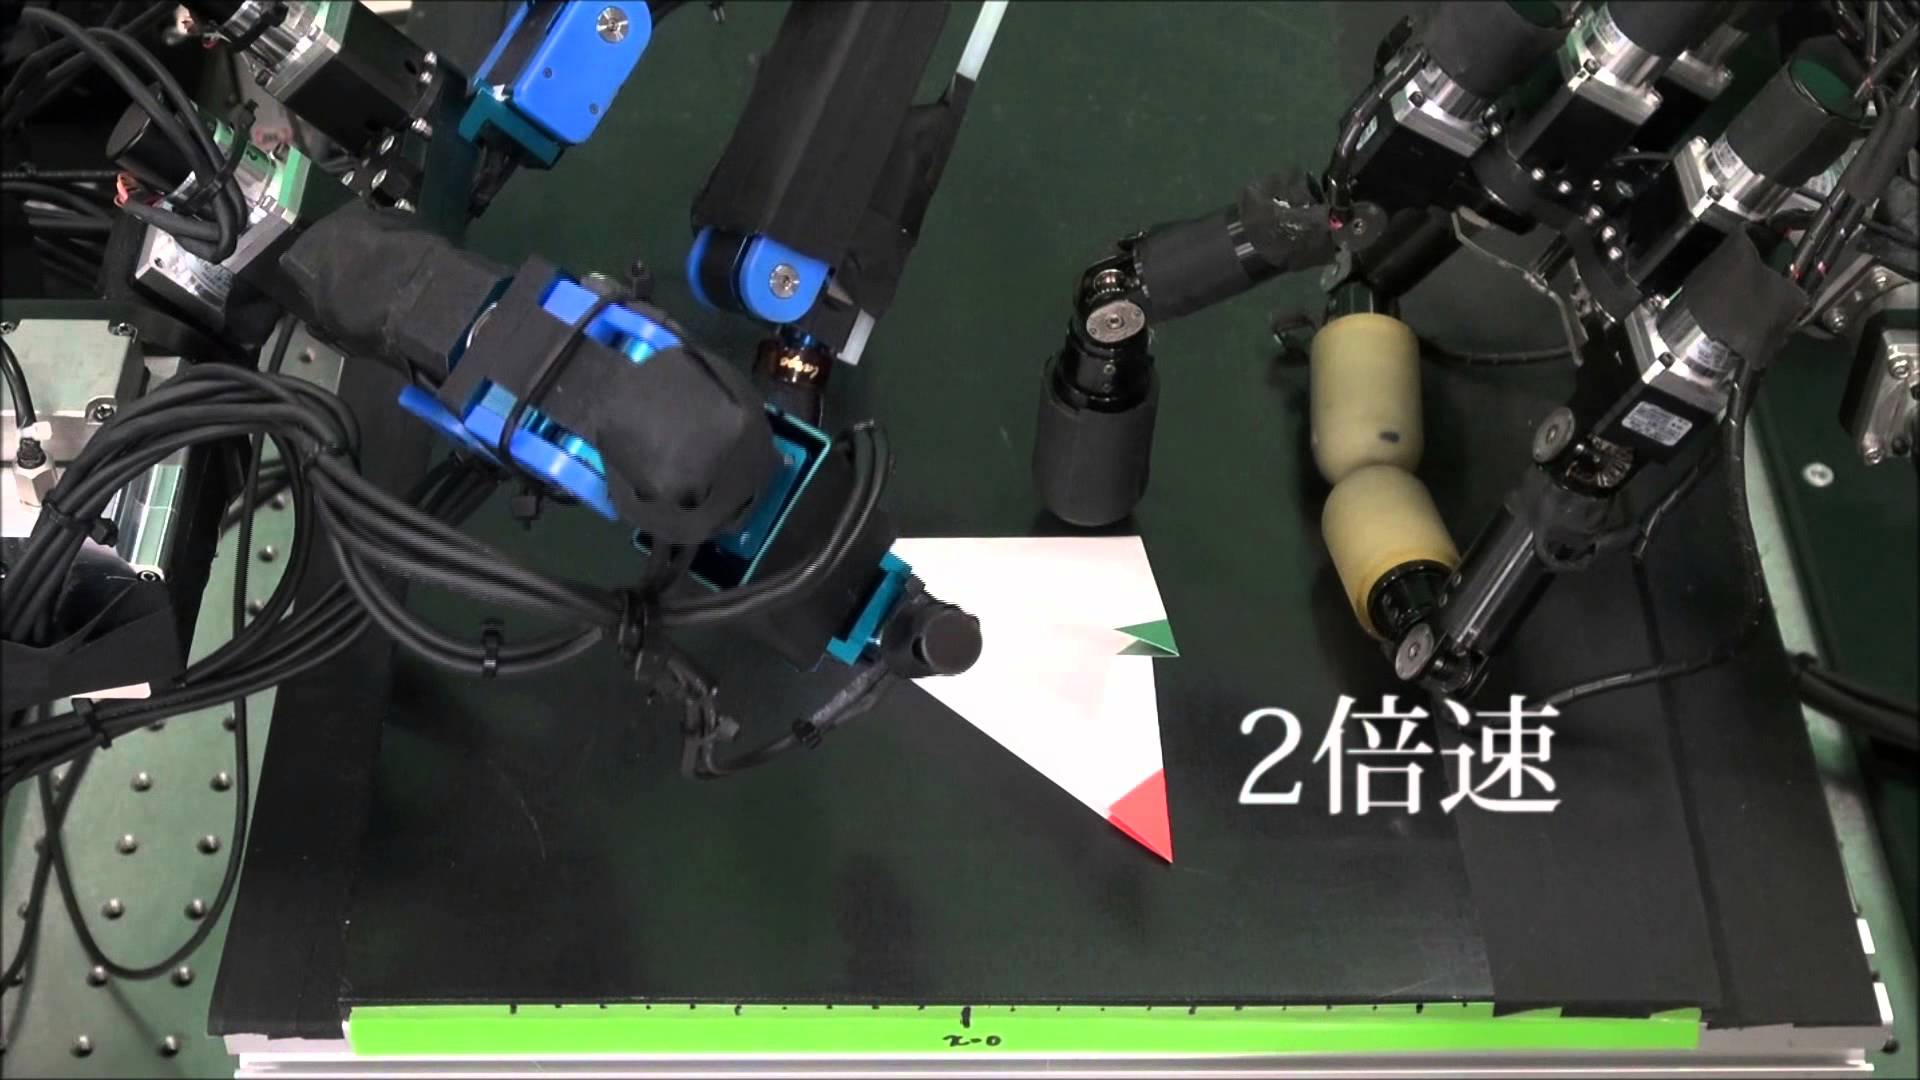 Watch How These Robots Do Some Paper Folding